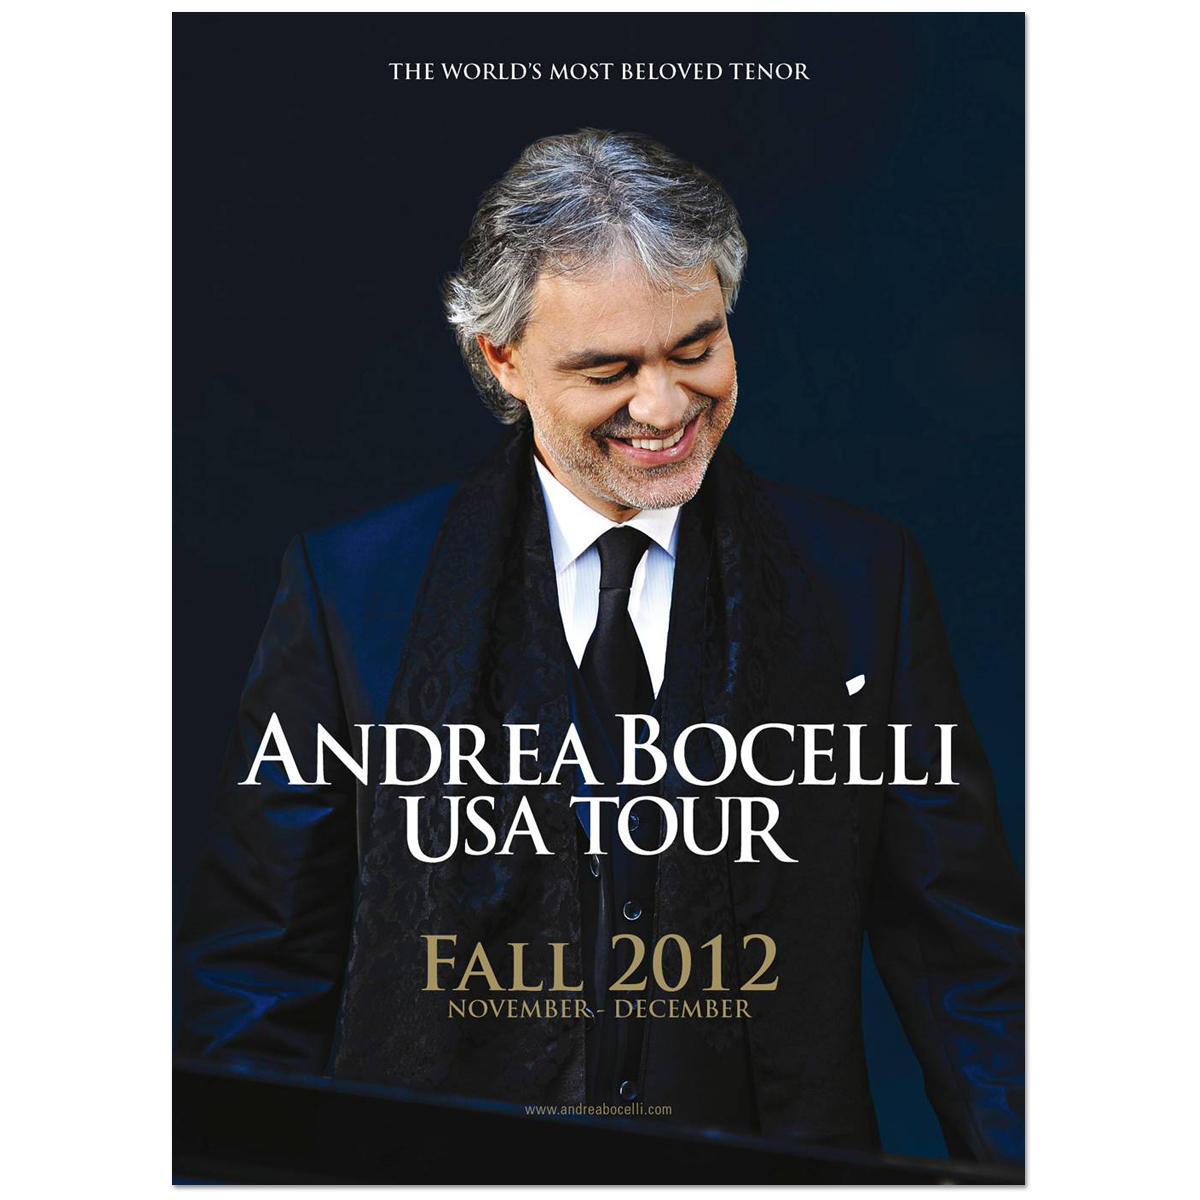 Andrea Bocelli Fall Tour 2012 Program